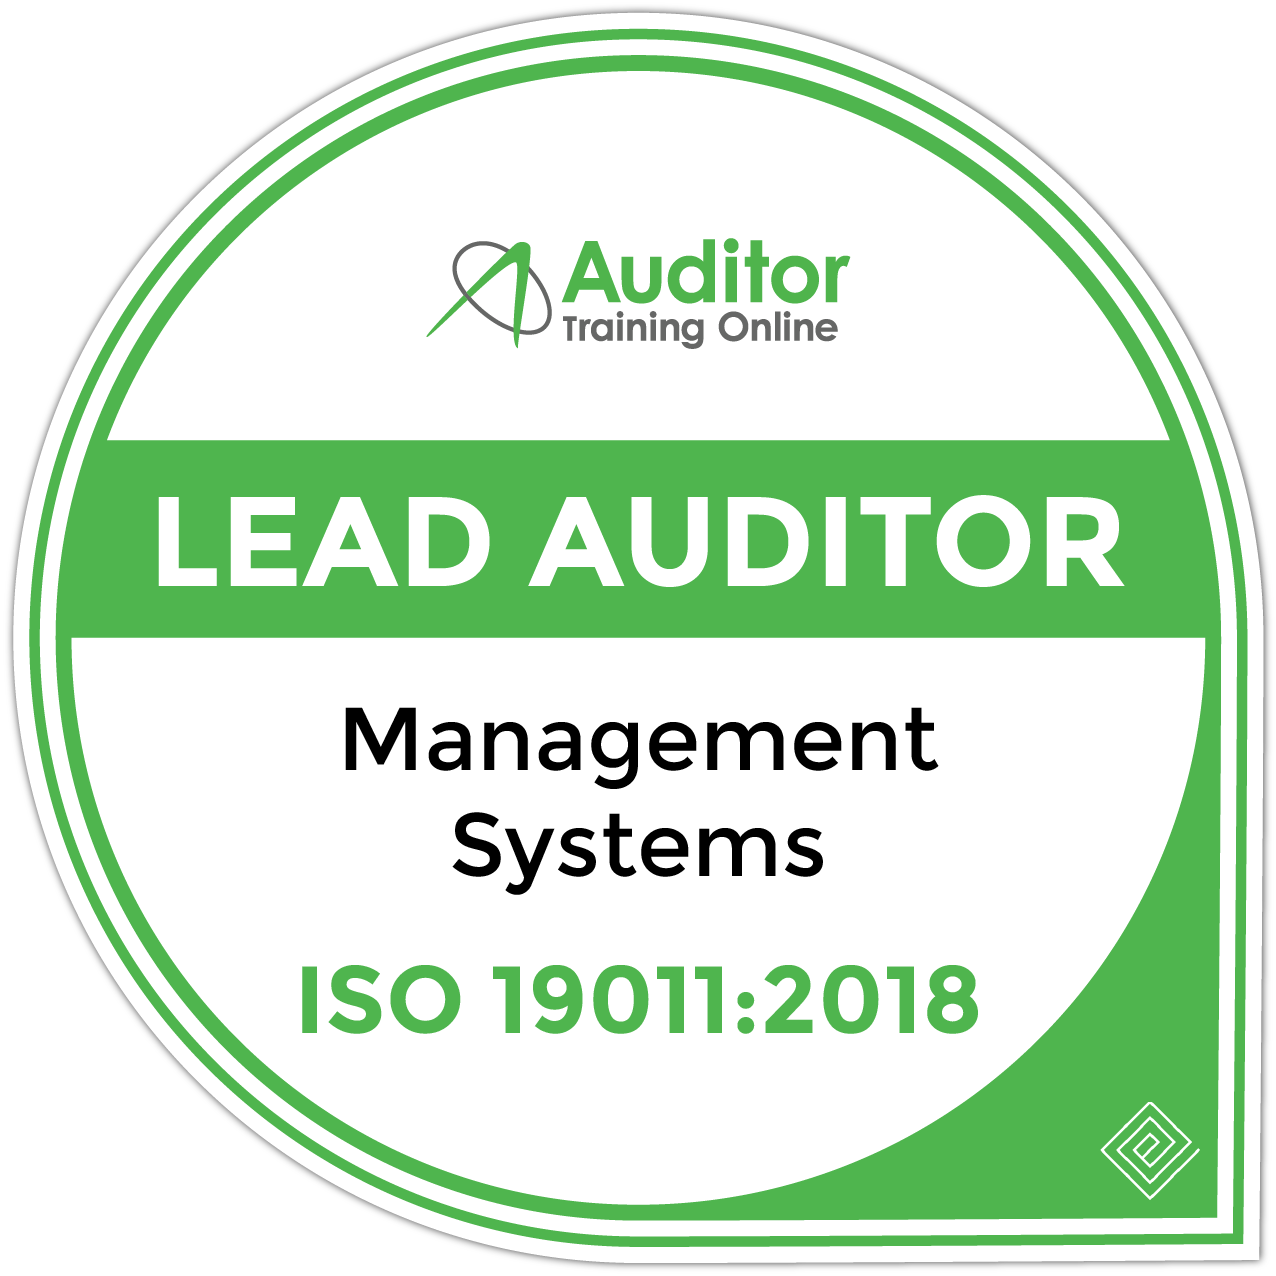 Lead Auditor Management Systems (ISO 19011:2018)